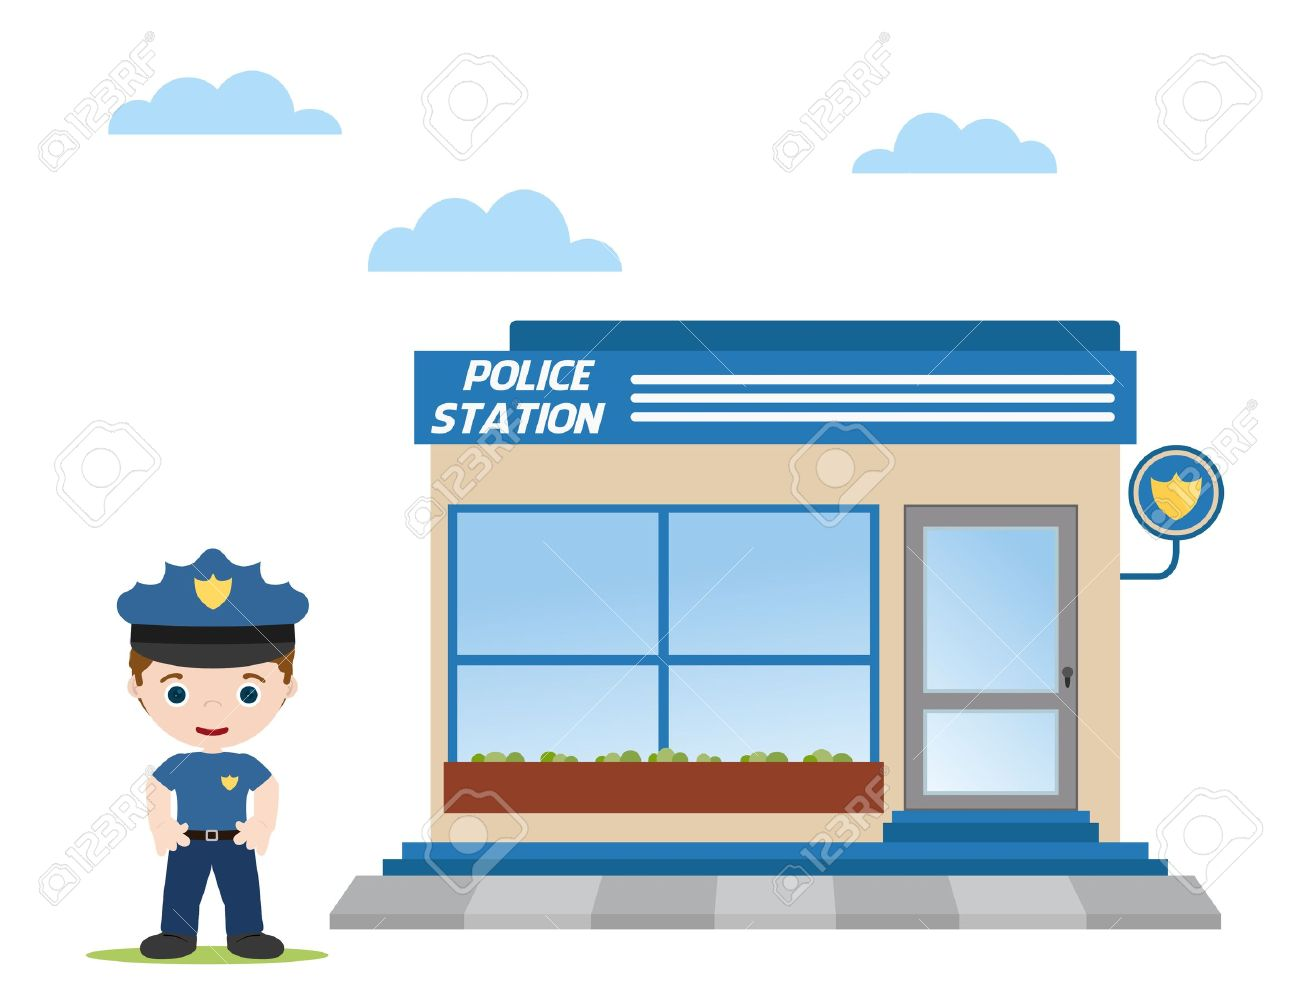 police station with police officer in front royalty free cliparts rh 123rf com police station building clipart police station building clipart